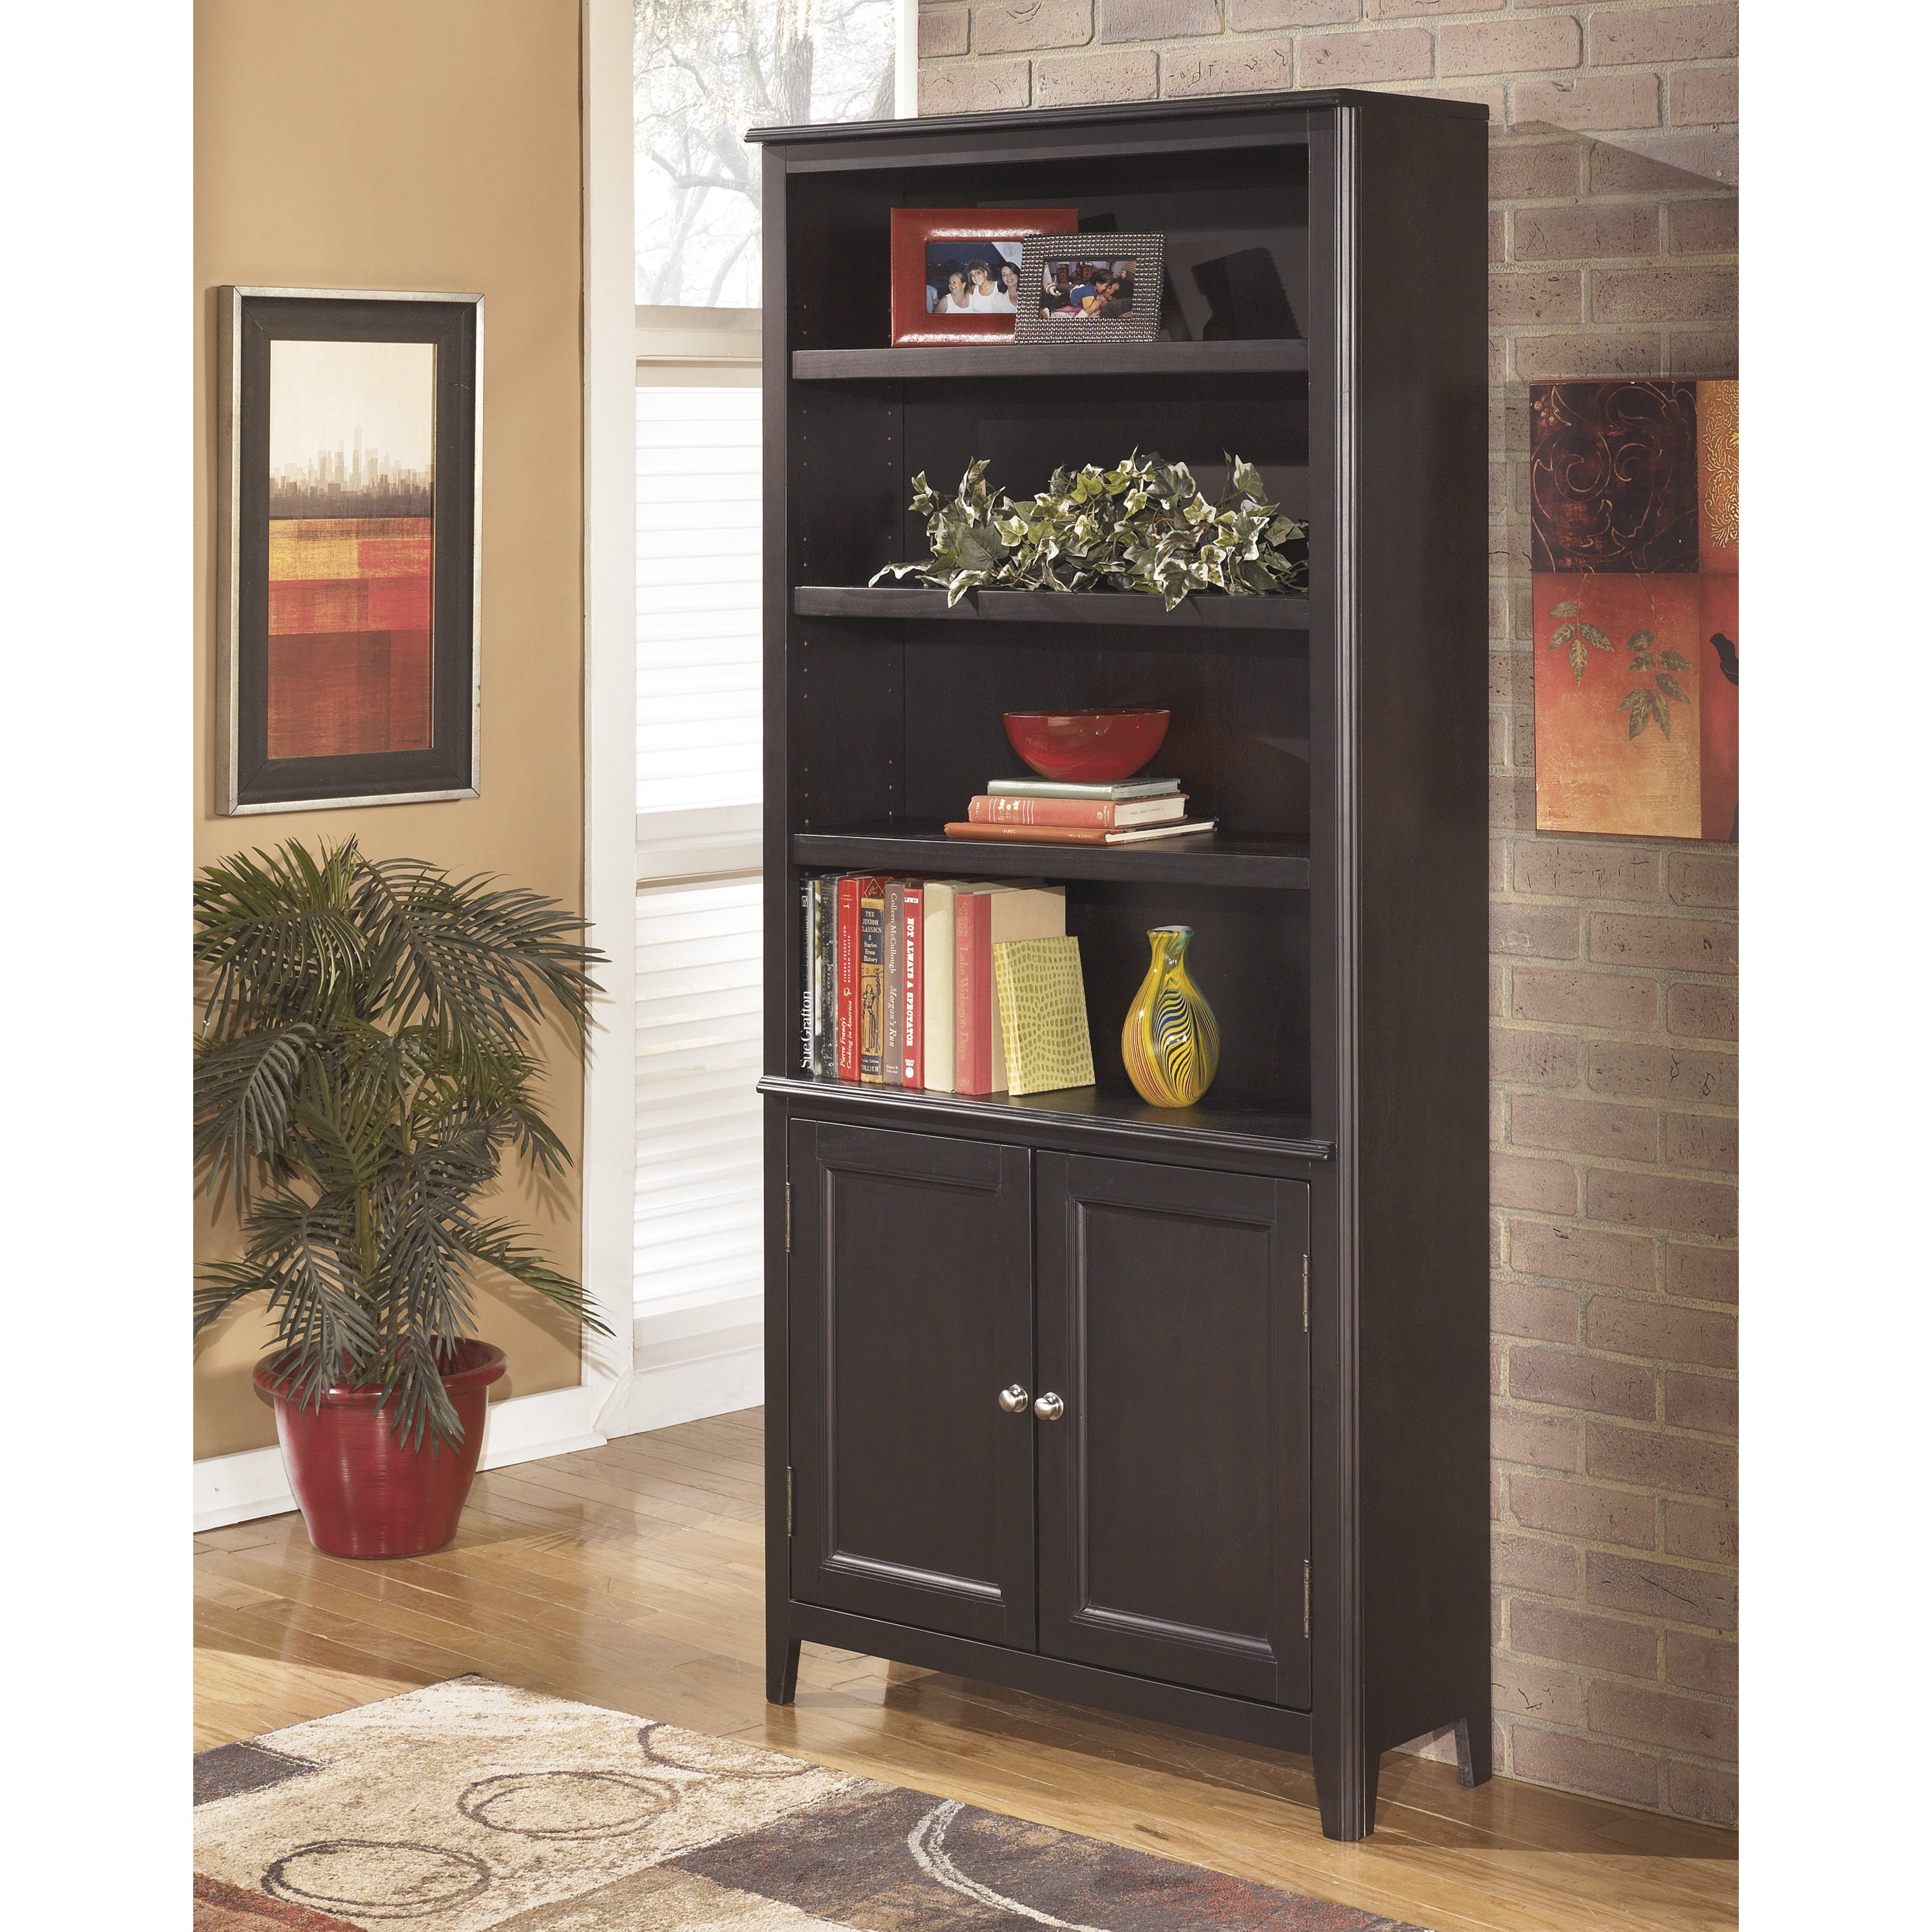 full design signature zayley ashley pin daybed by color bookcase bedside with customizable bookcases panels